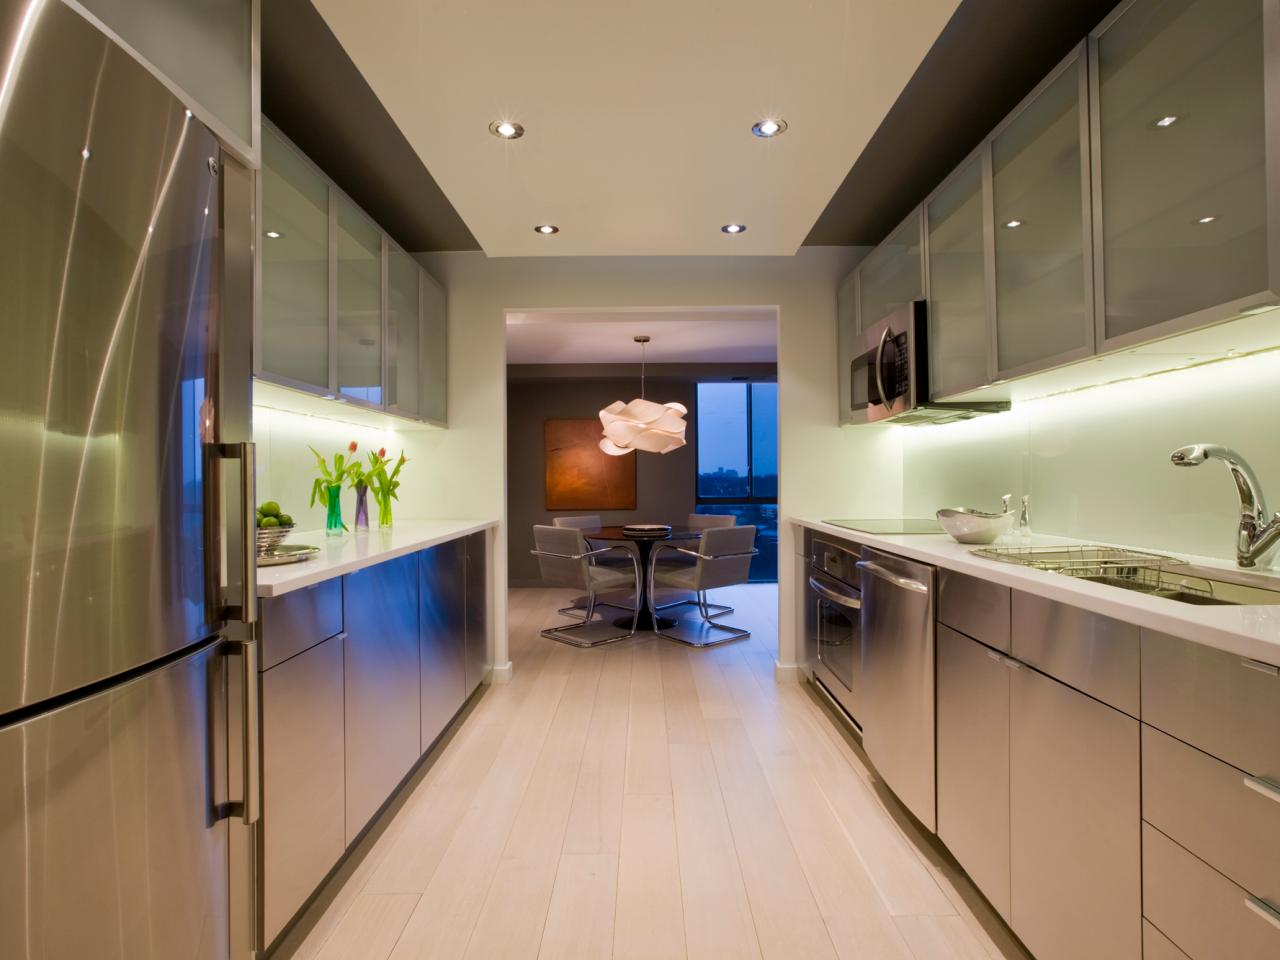 Amusing Design Of The Kitchen Layout Design With Silver Stainless Steel Cabinets And Vanities Added With Green Wall Ideas